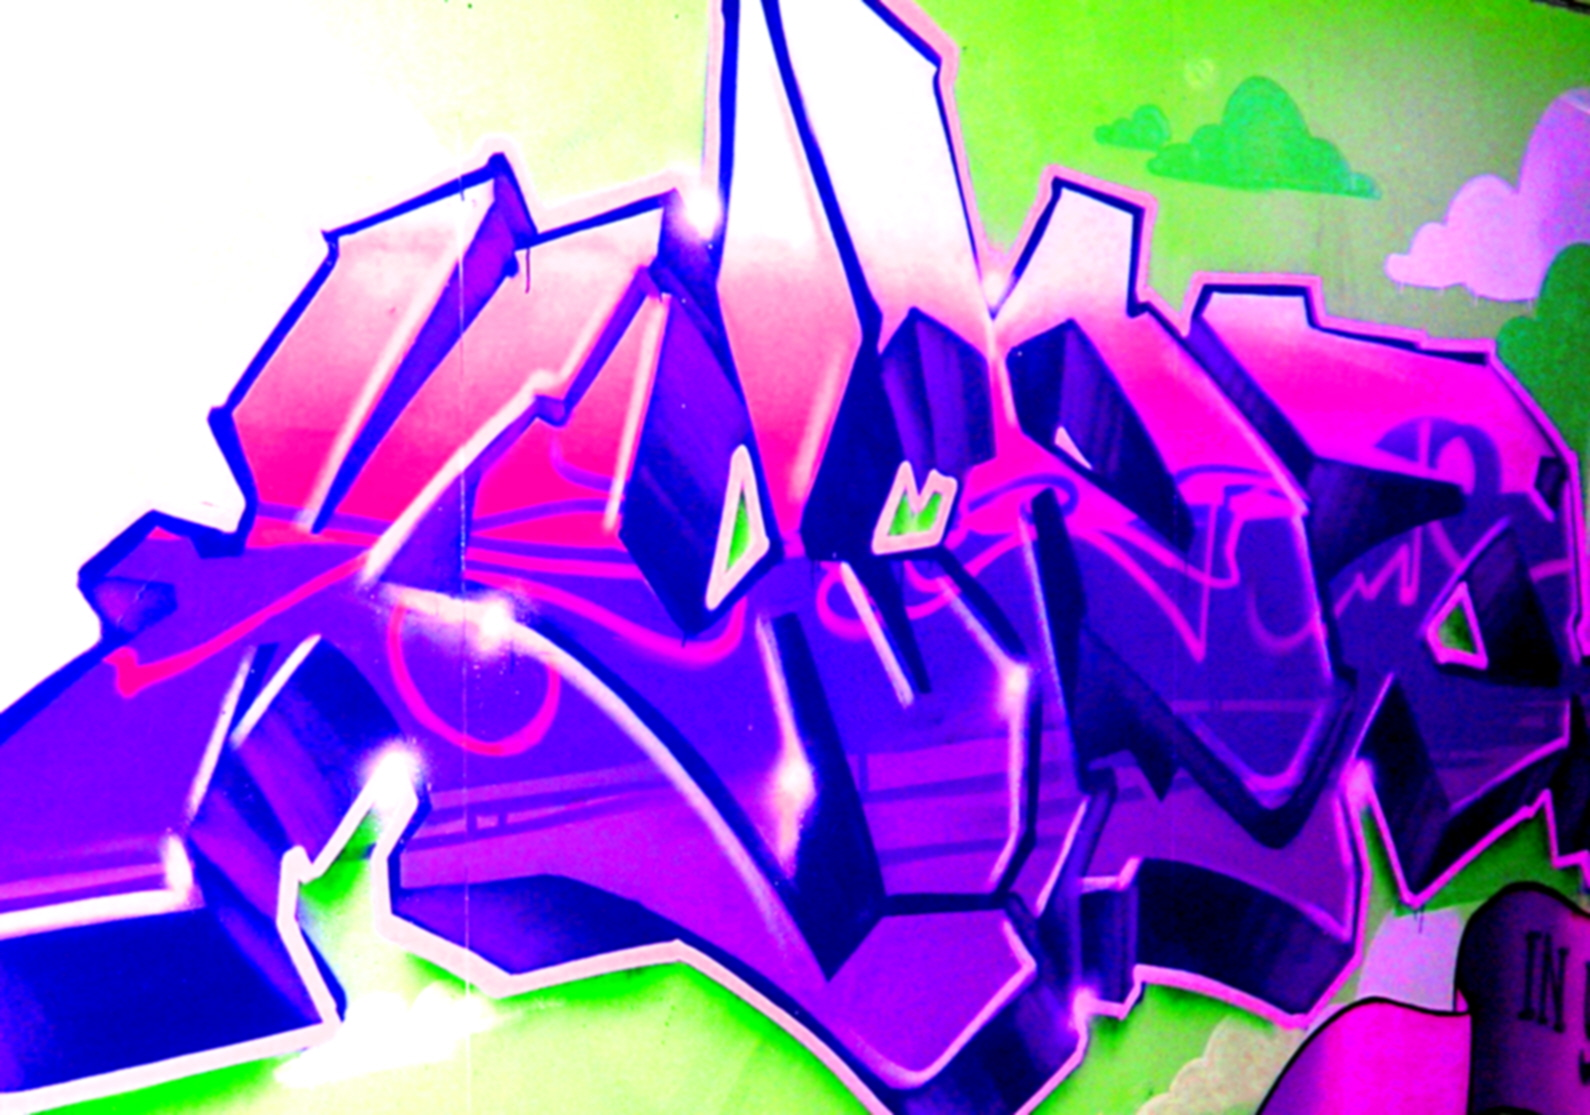 Graffiti pics and fontmystu cool graffiti wallpaper best for Graffiti wallpaper